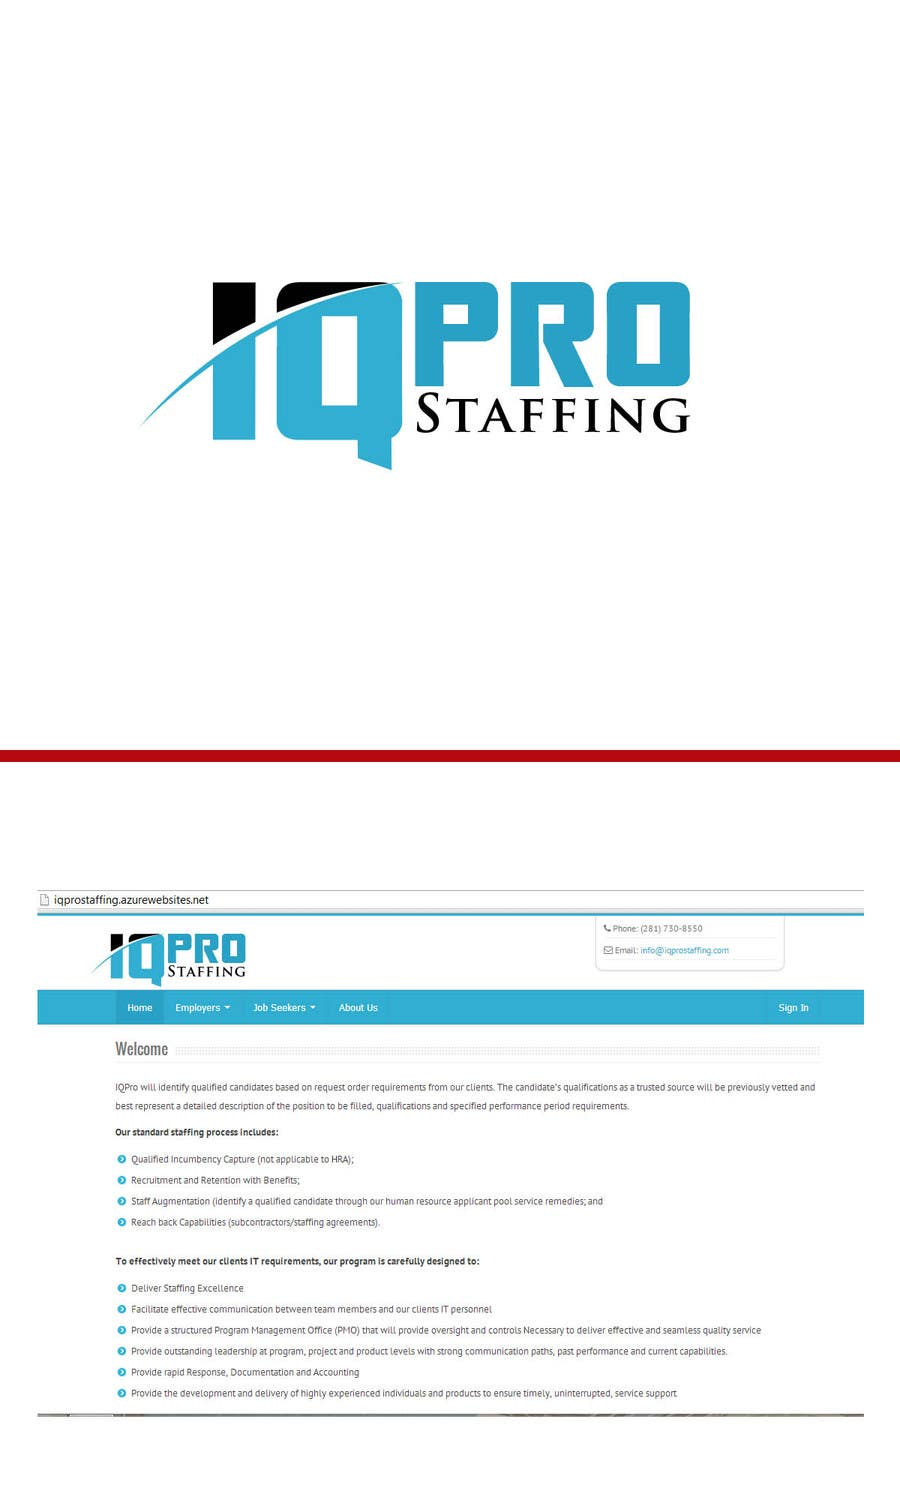 Bài tham dự cuộc thi #                                        10                                      cho                                         Develop a Corporate Identity for IQPro Staffing